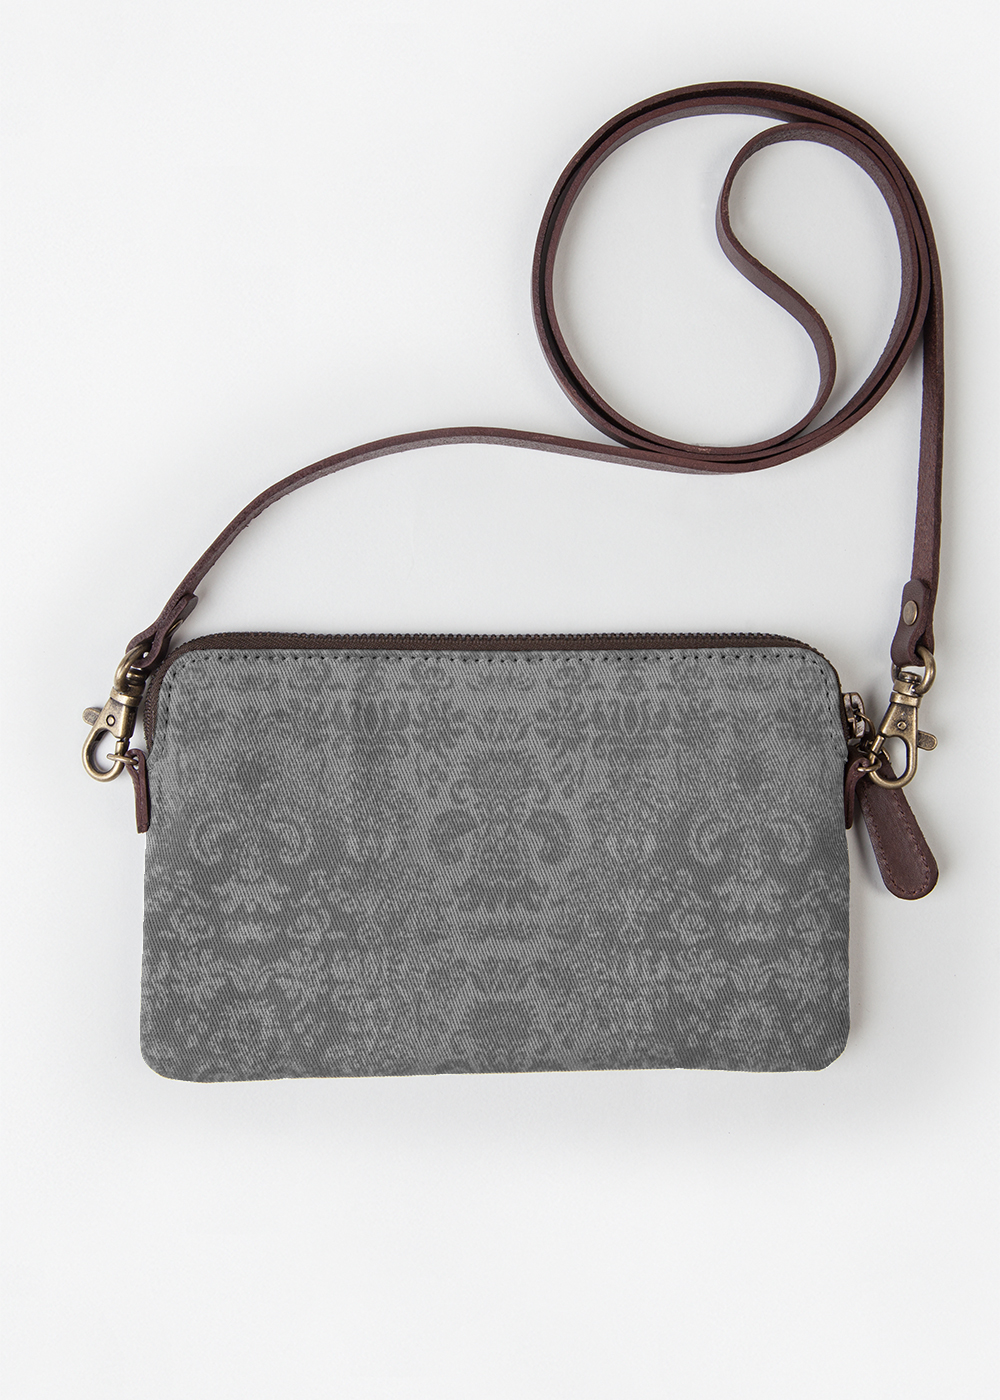 VIDA Statement Bag - Peaking over by VIDA jlWu3